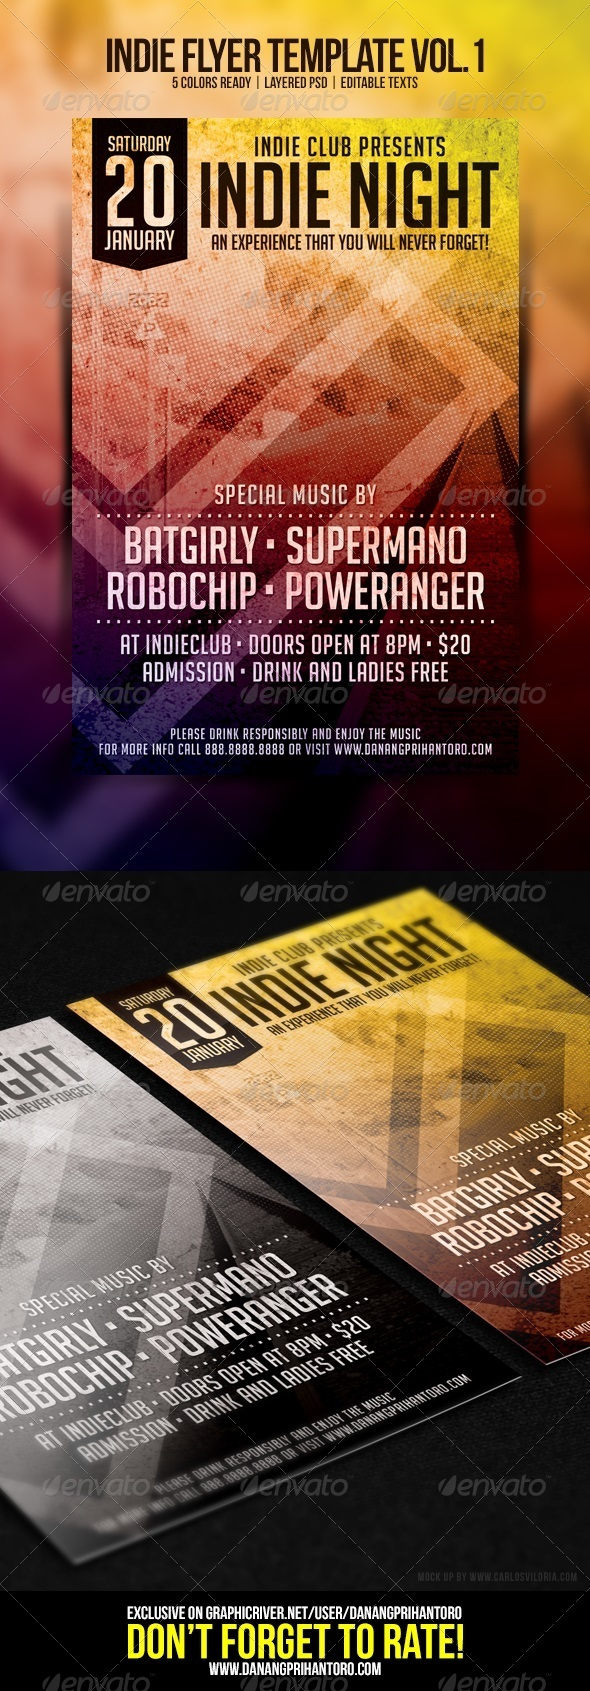 GraphicRiver Indie Flyer Template Vol 1 6608632